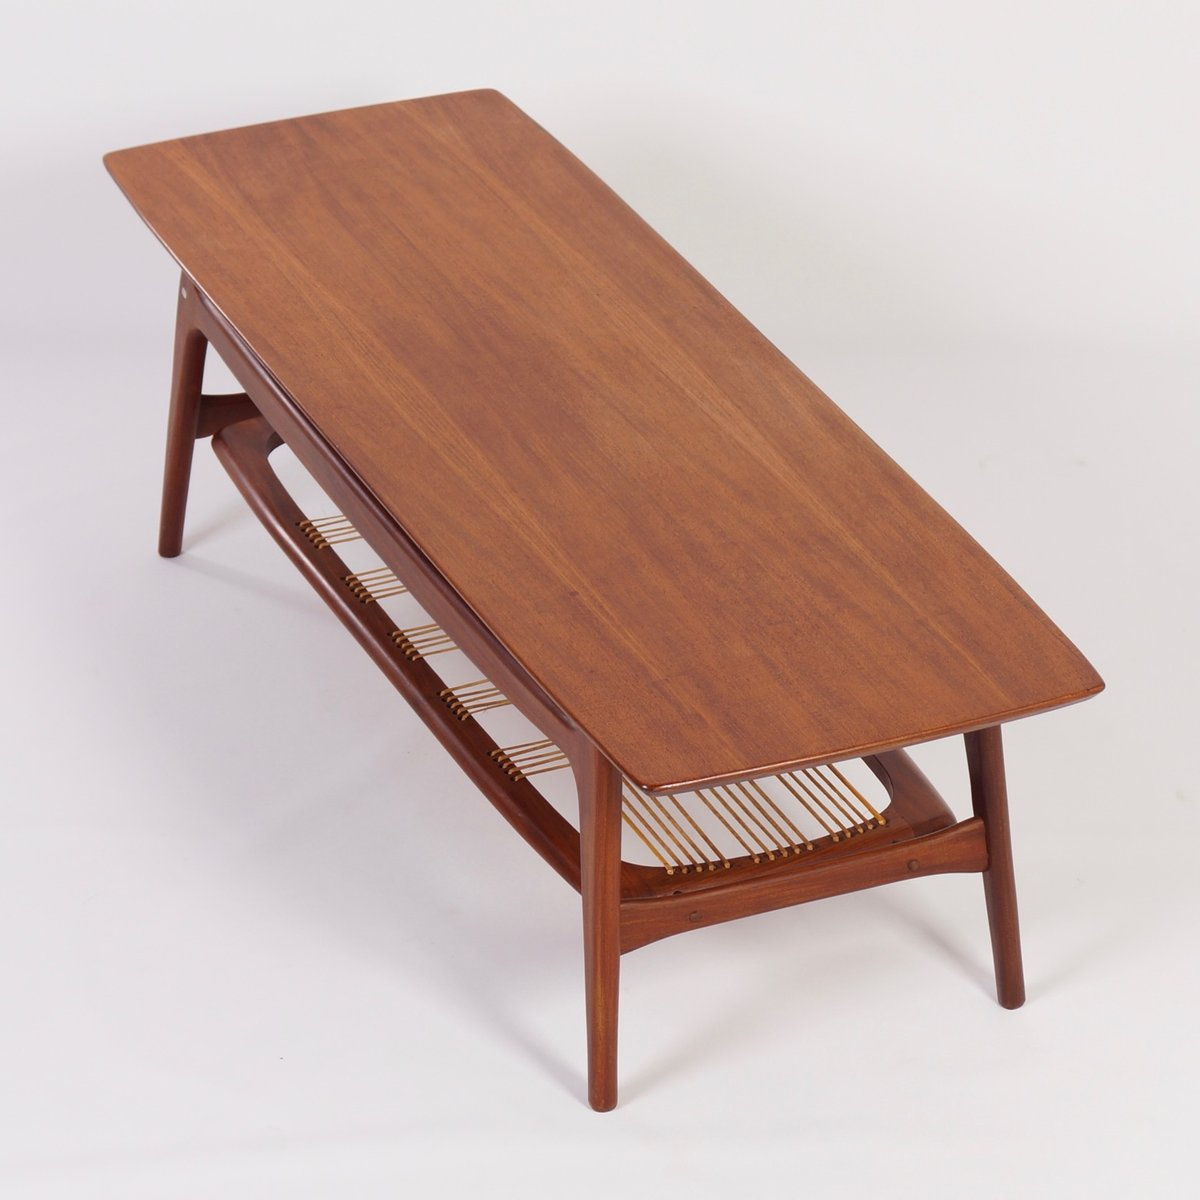 Teak Coffee Table By Louis Van Teeffelen For W B 1960s For Sale At Pamono